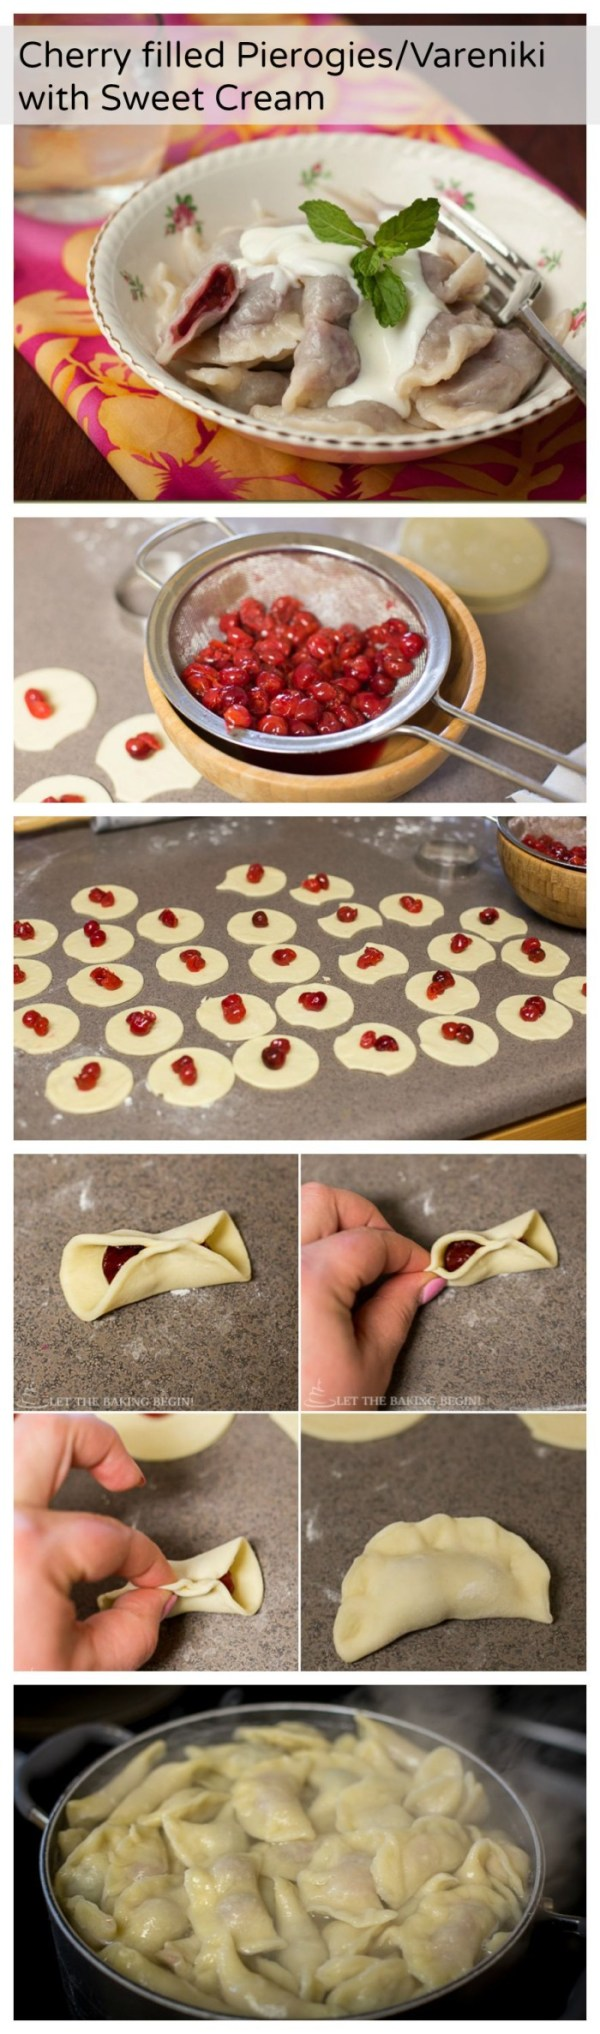 Cherry Pierogies/Vareniki with Sweet Cream - authentic, sweet and delicious these bring me back right to my childhood!